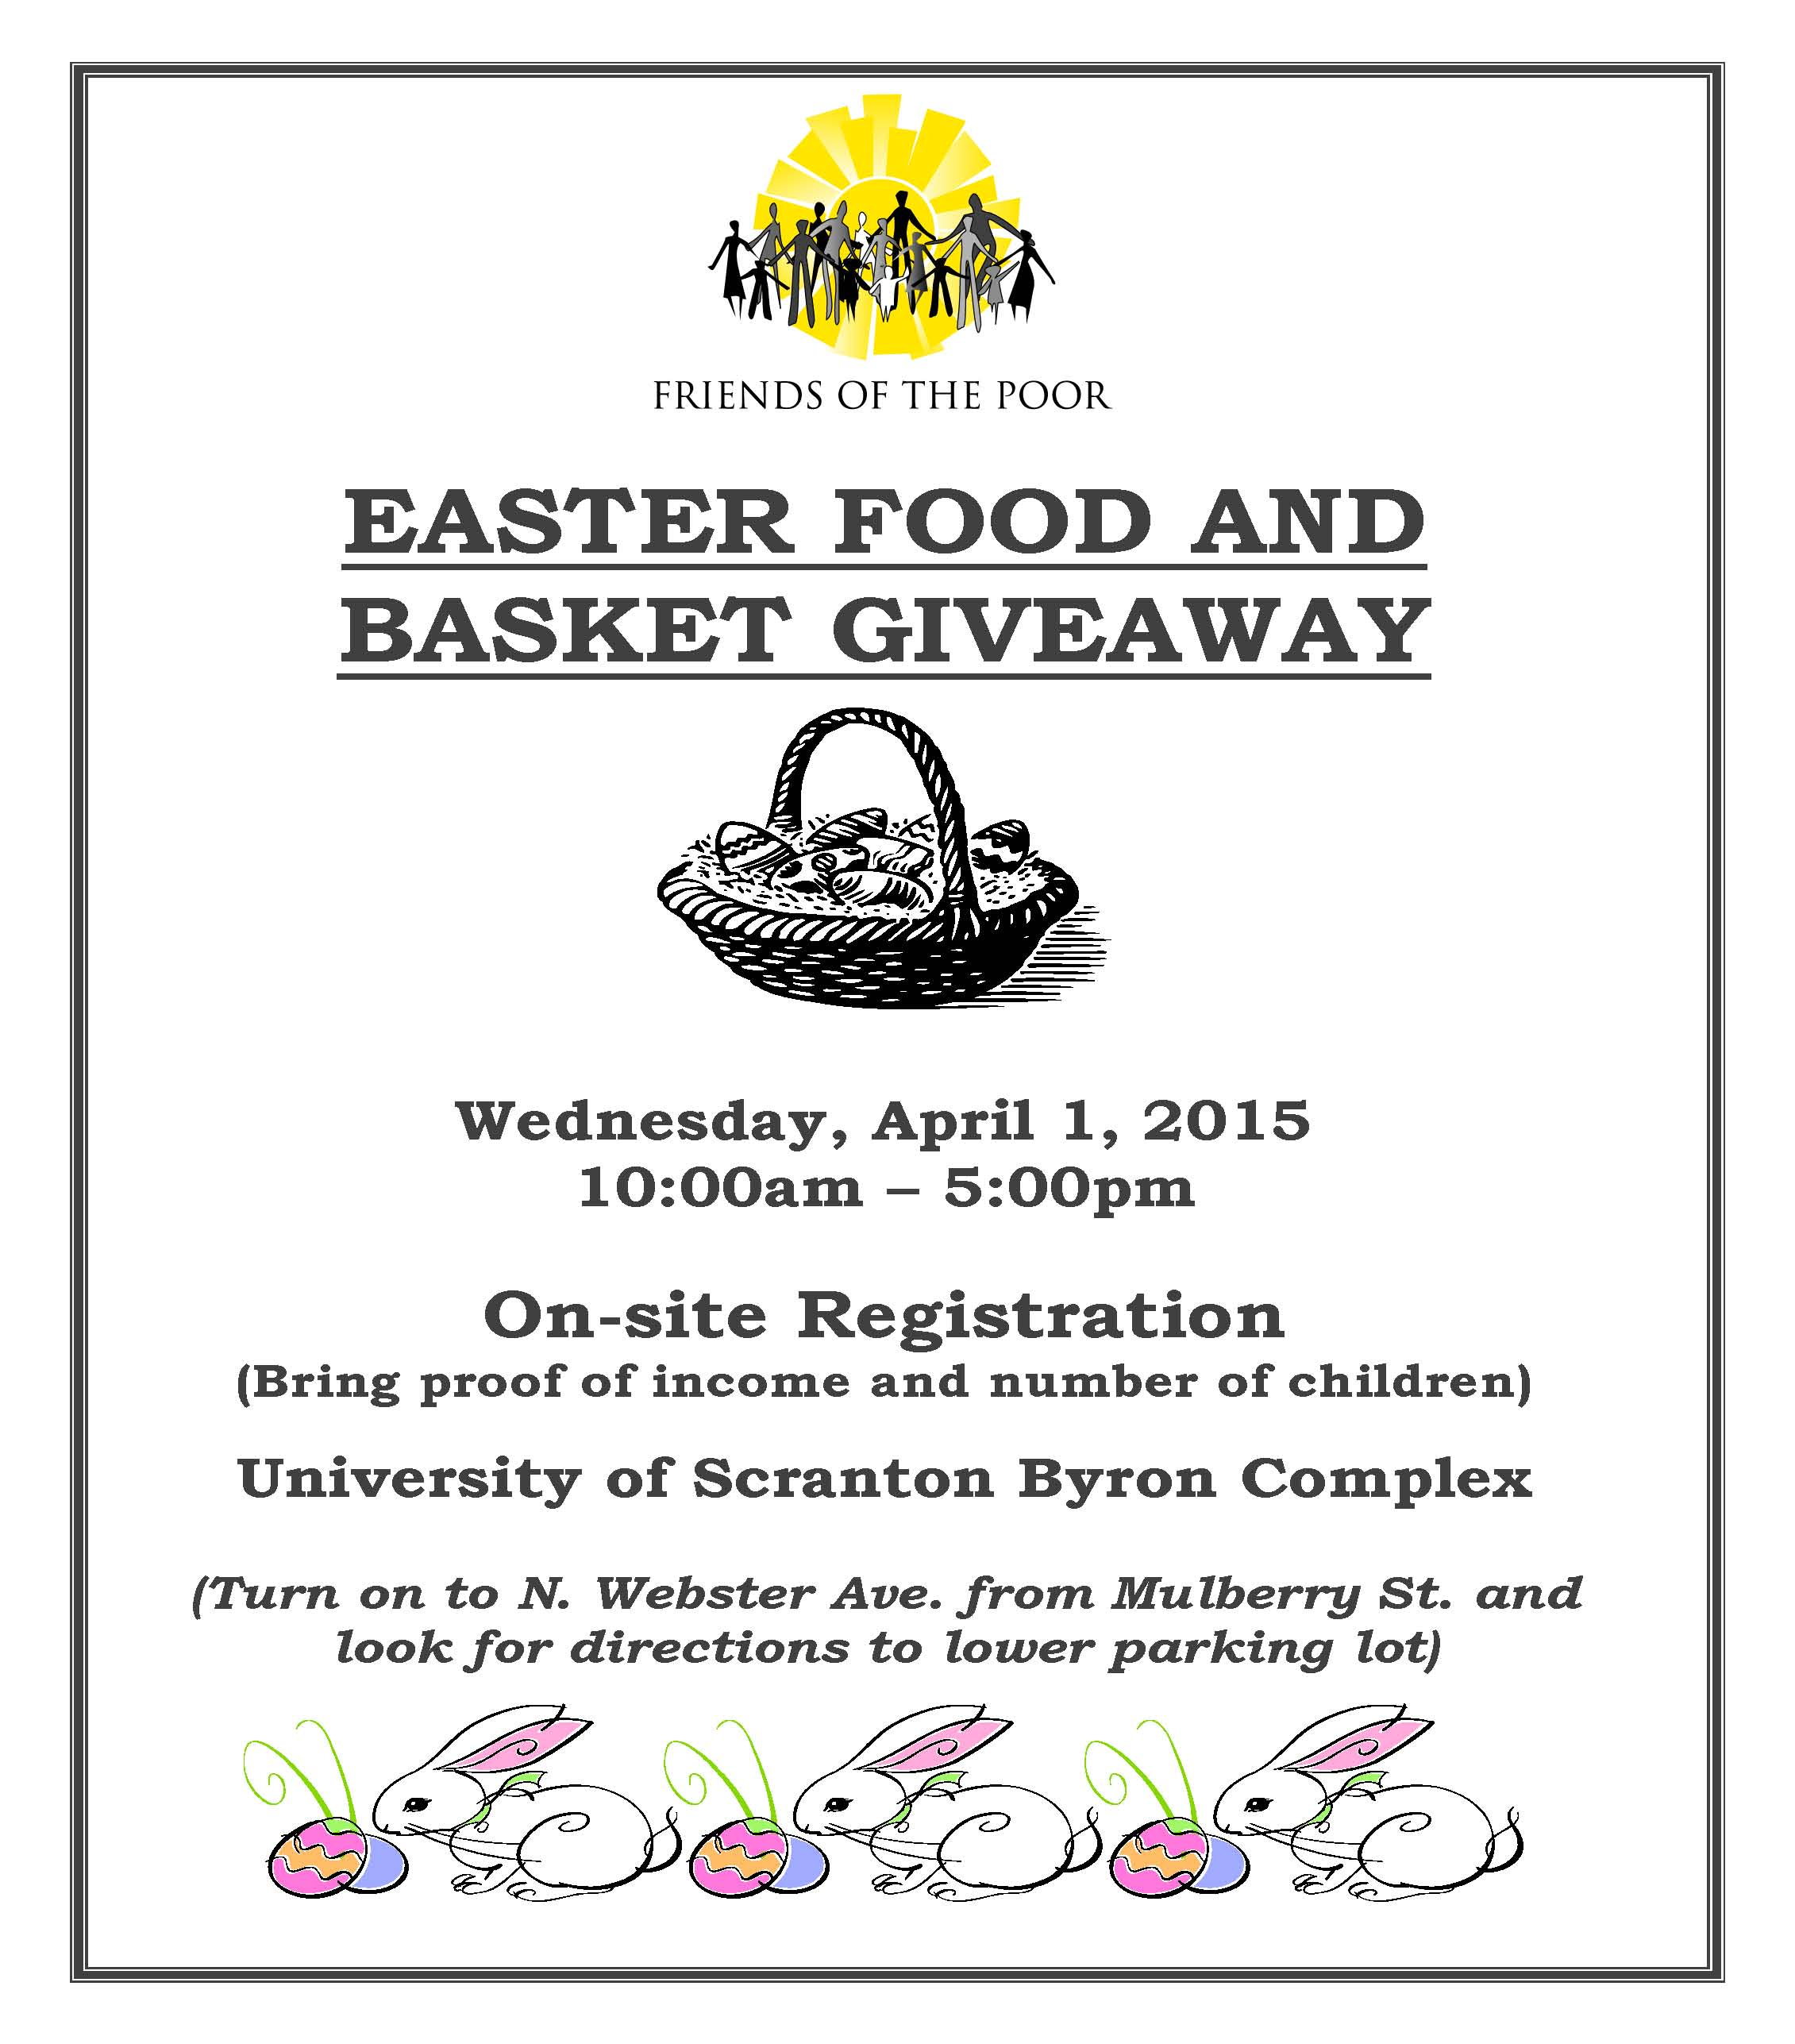 easter food giveaway flyer 2015 the advocacy alliance blog